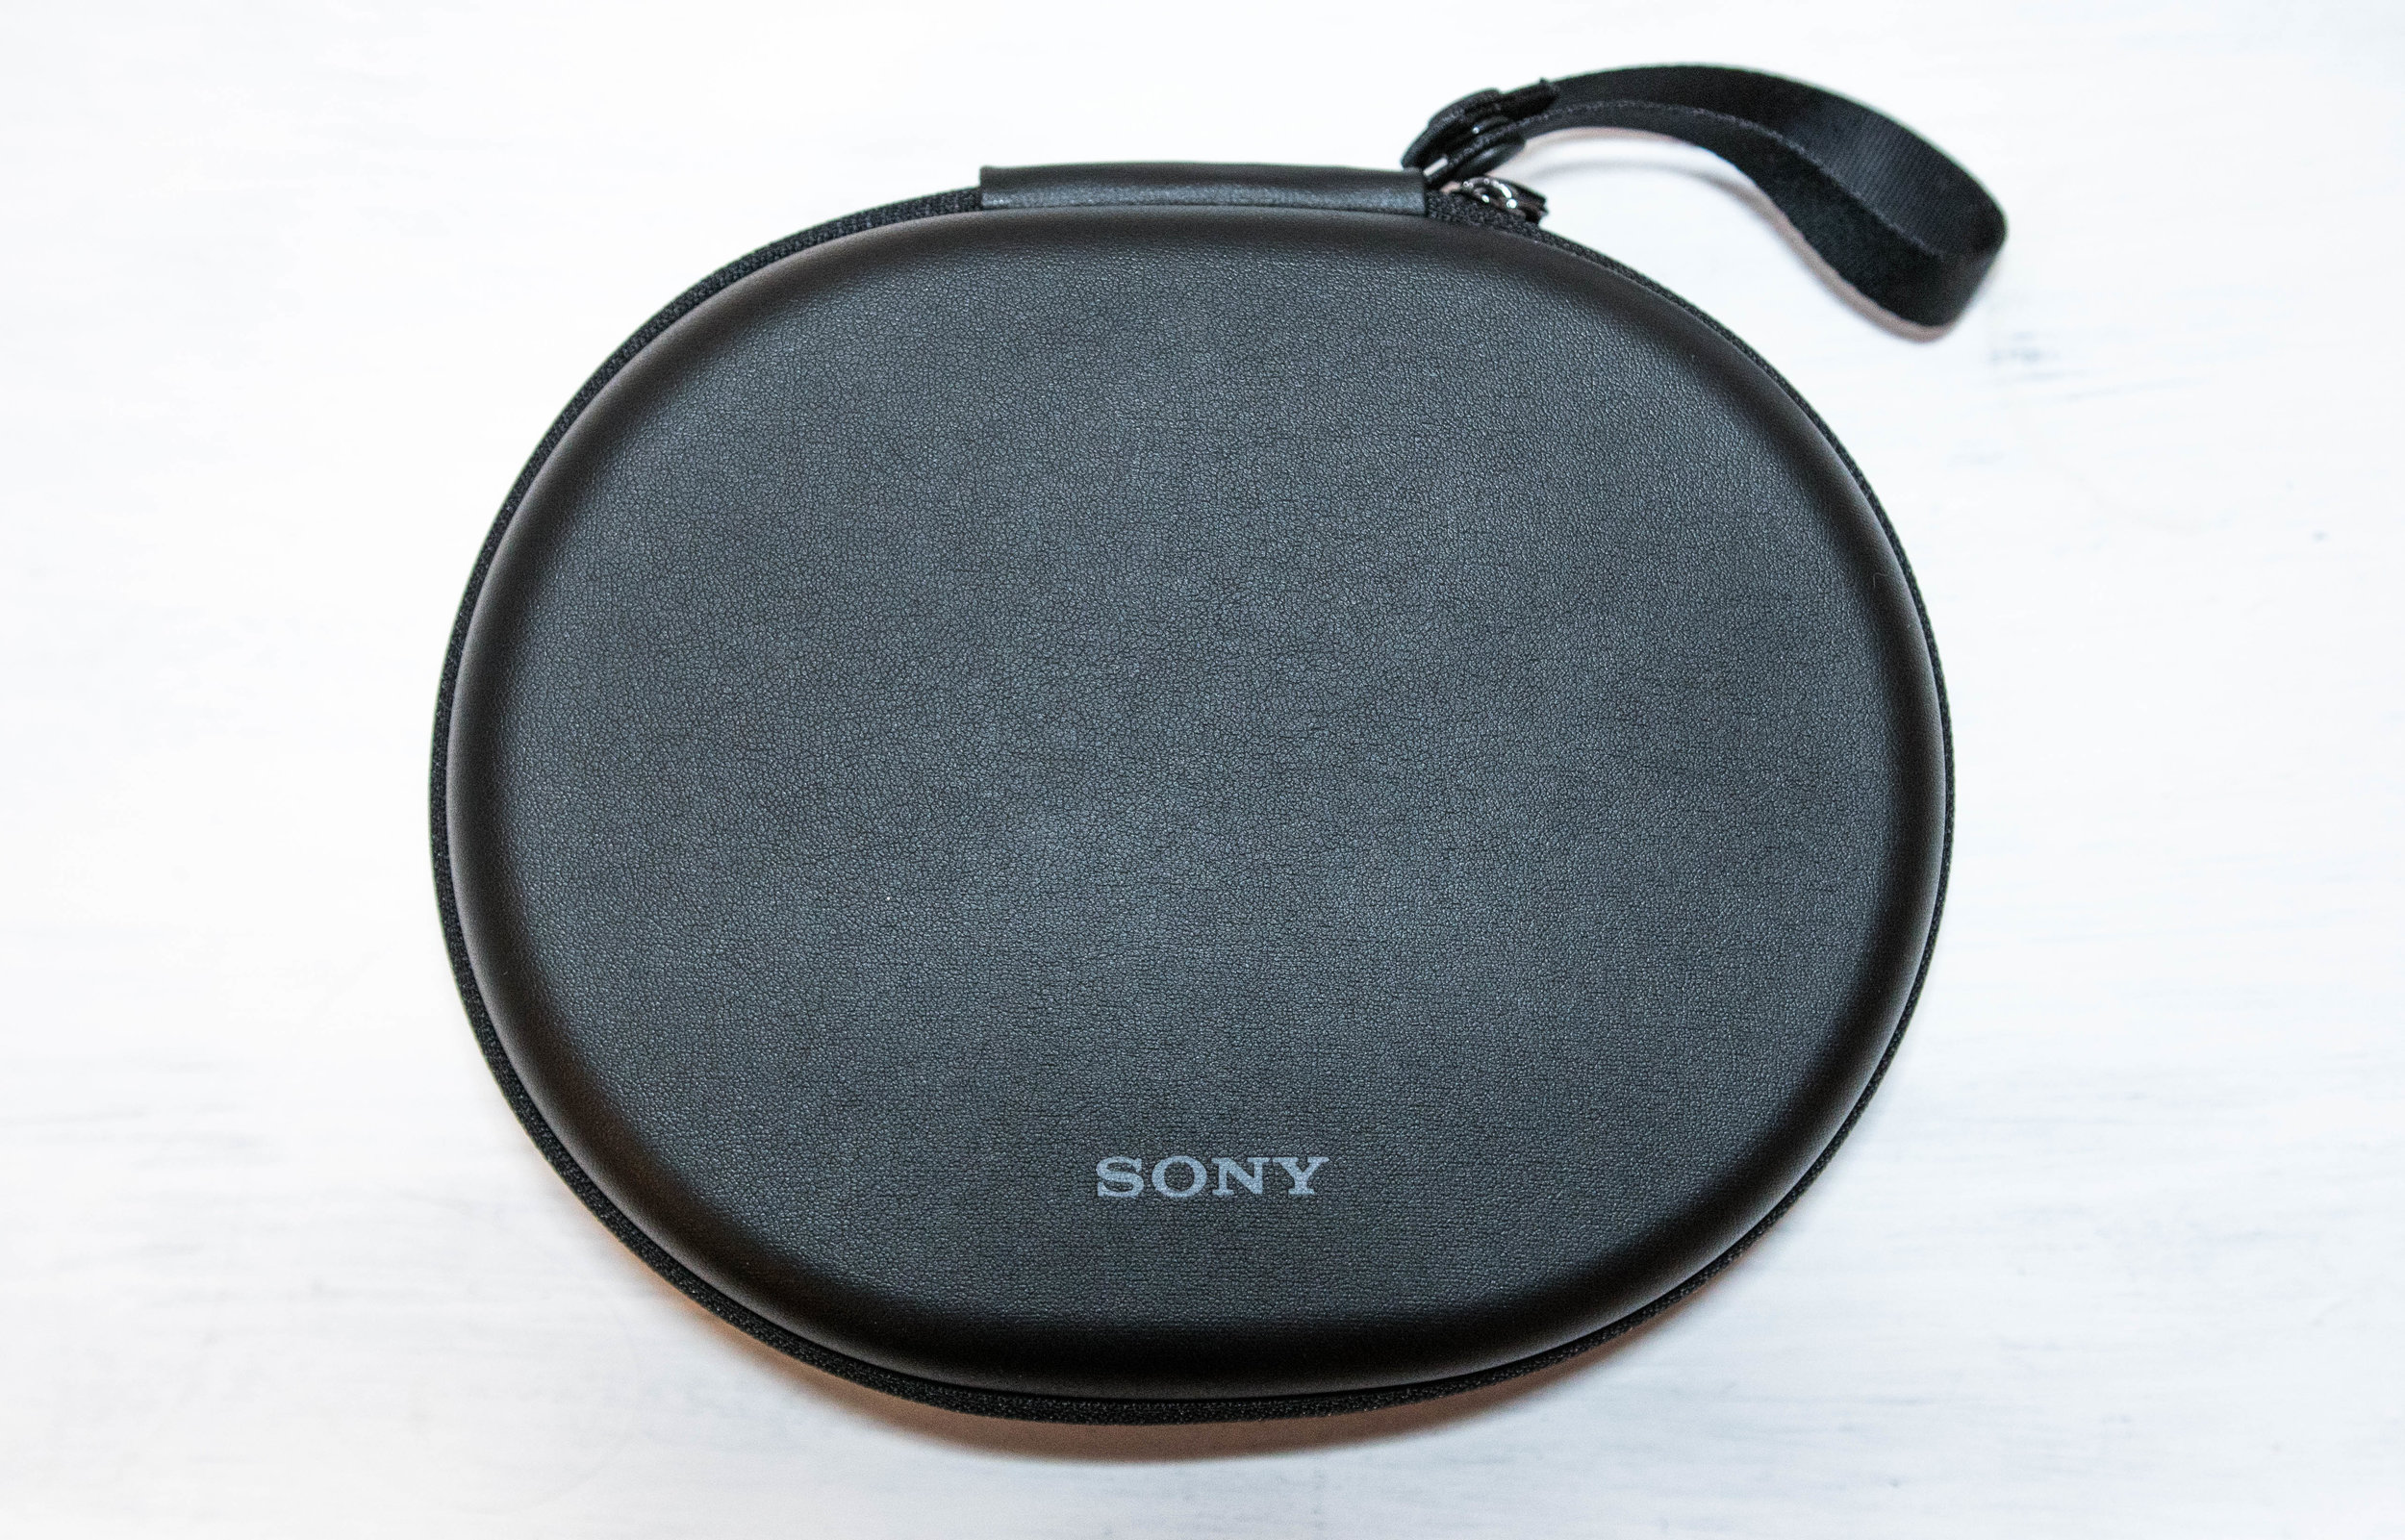 The included headphone carry case for the Sony WH-1000XM2.